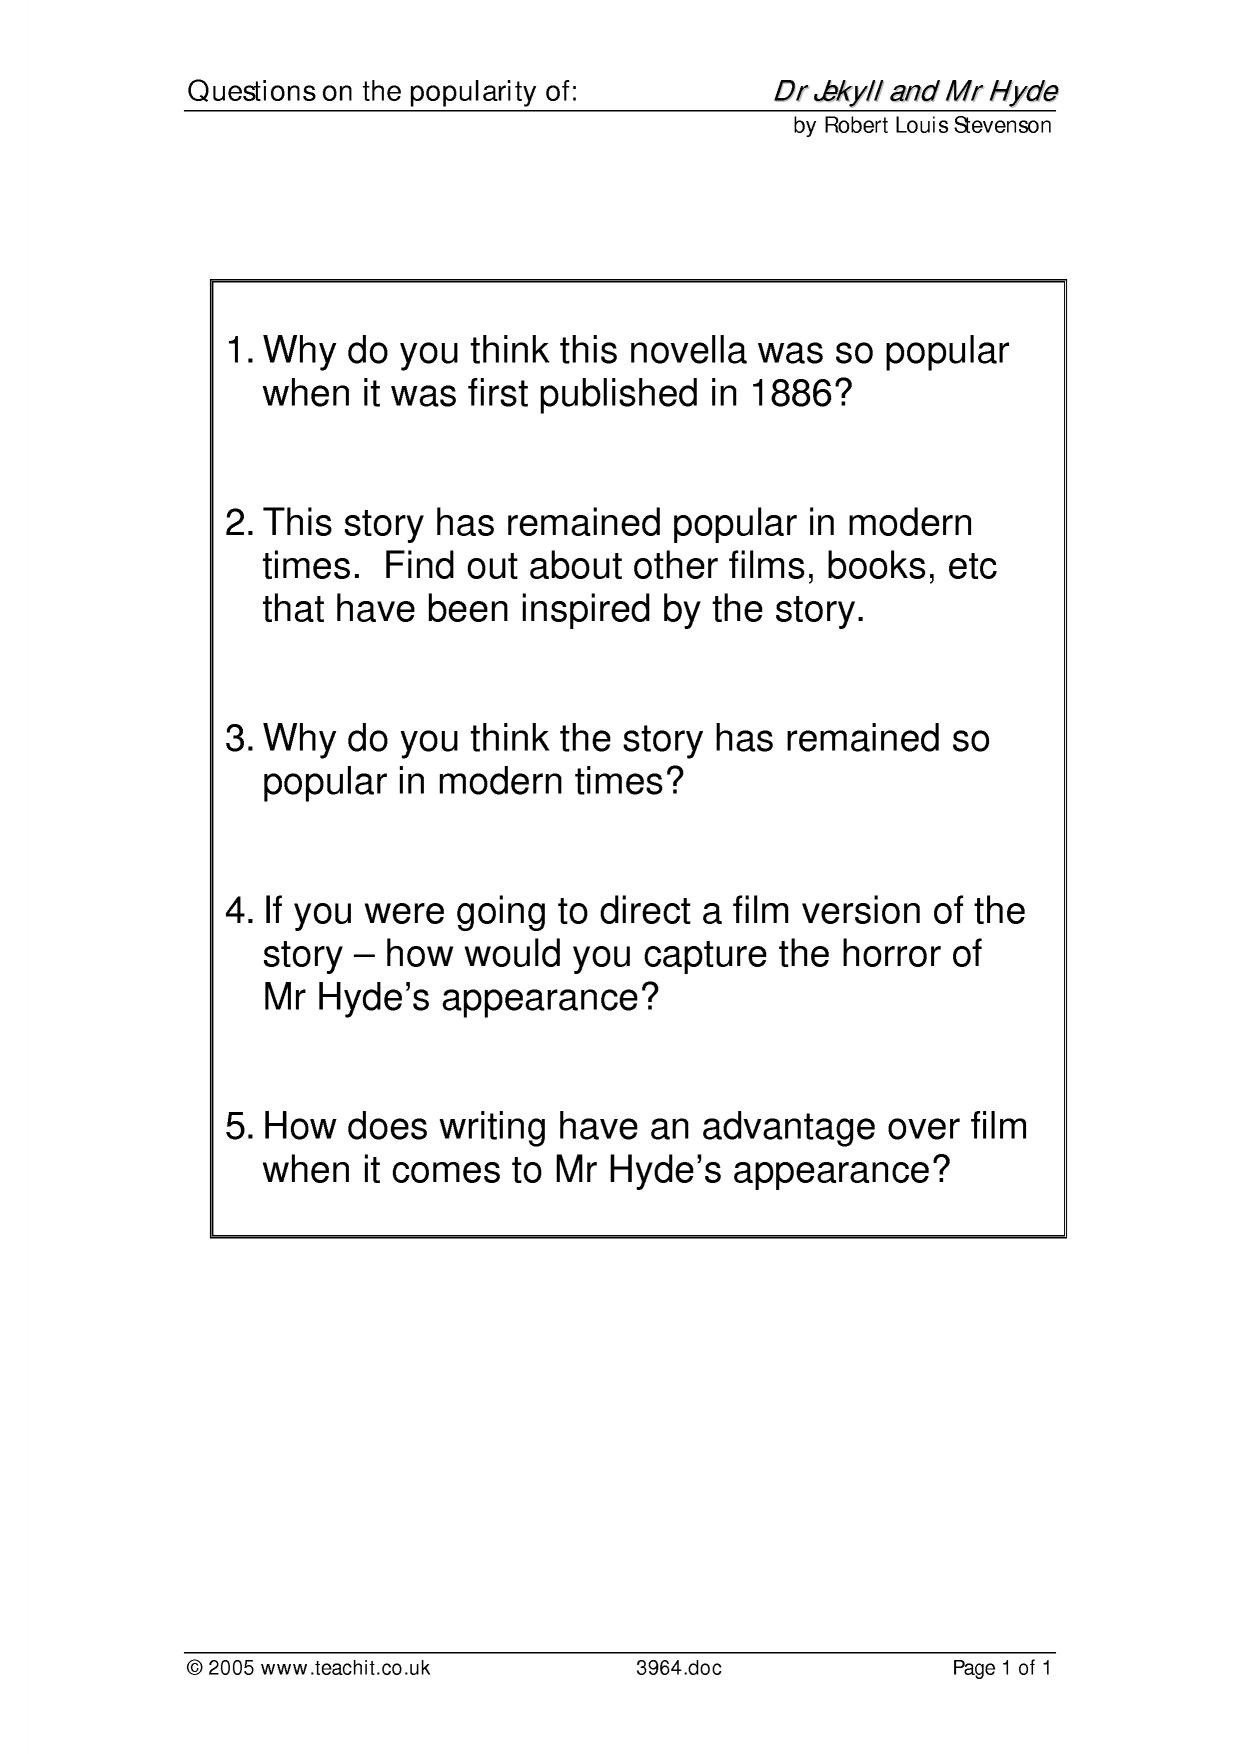 dr jekyll and mr hyde the strange case of by robert louis   1 preview ks4 dr jekyll and mr hyde